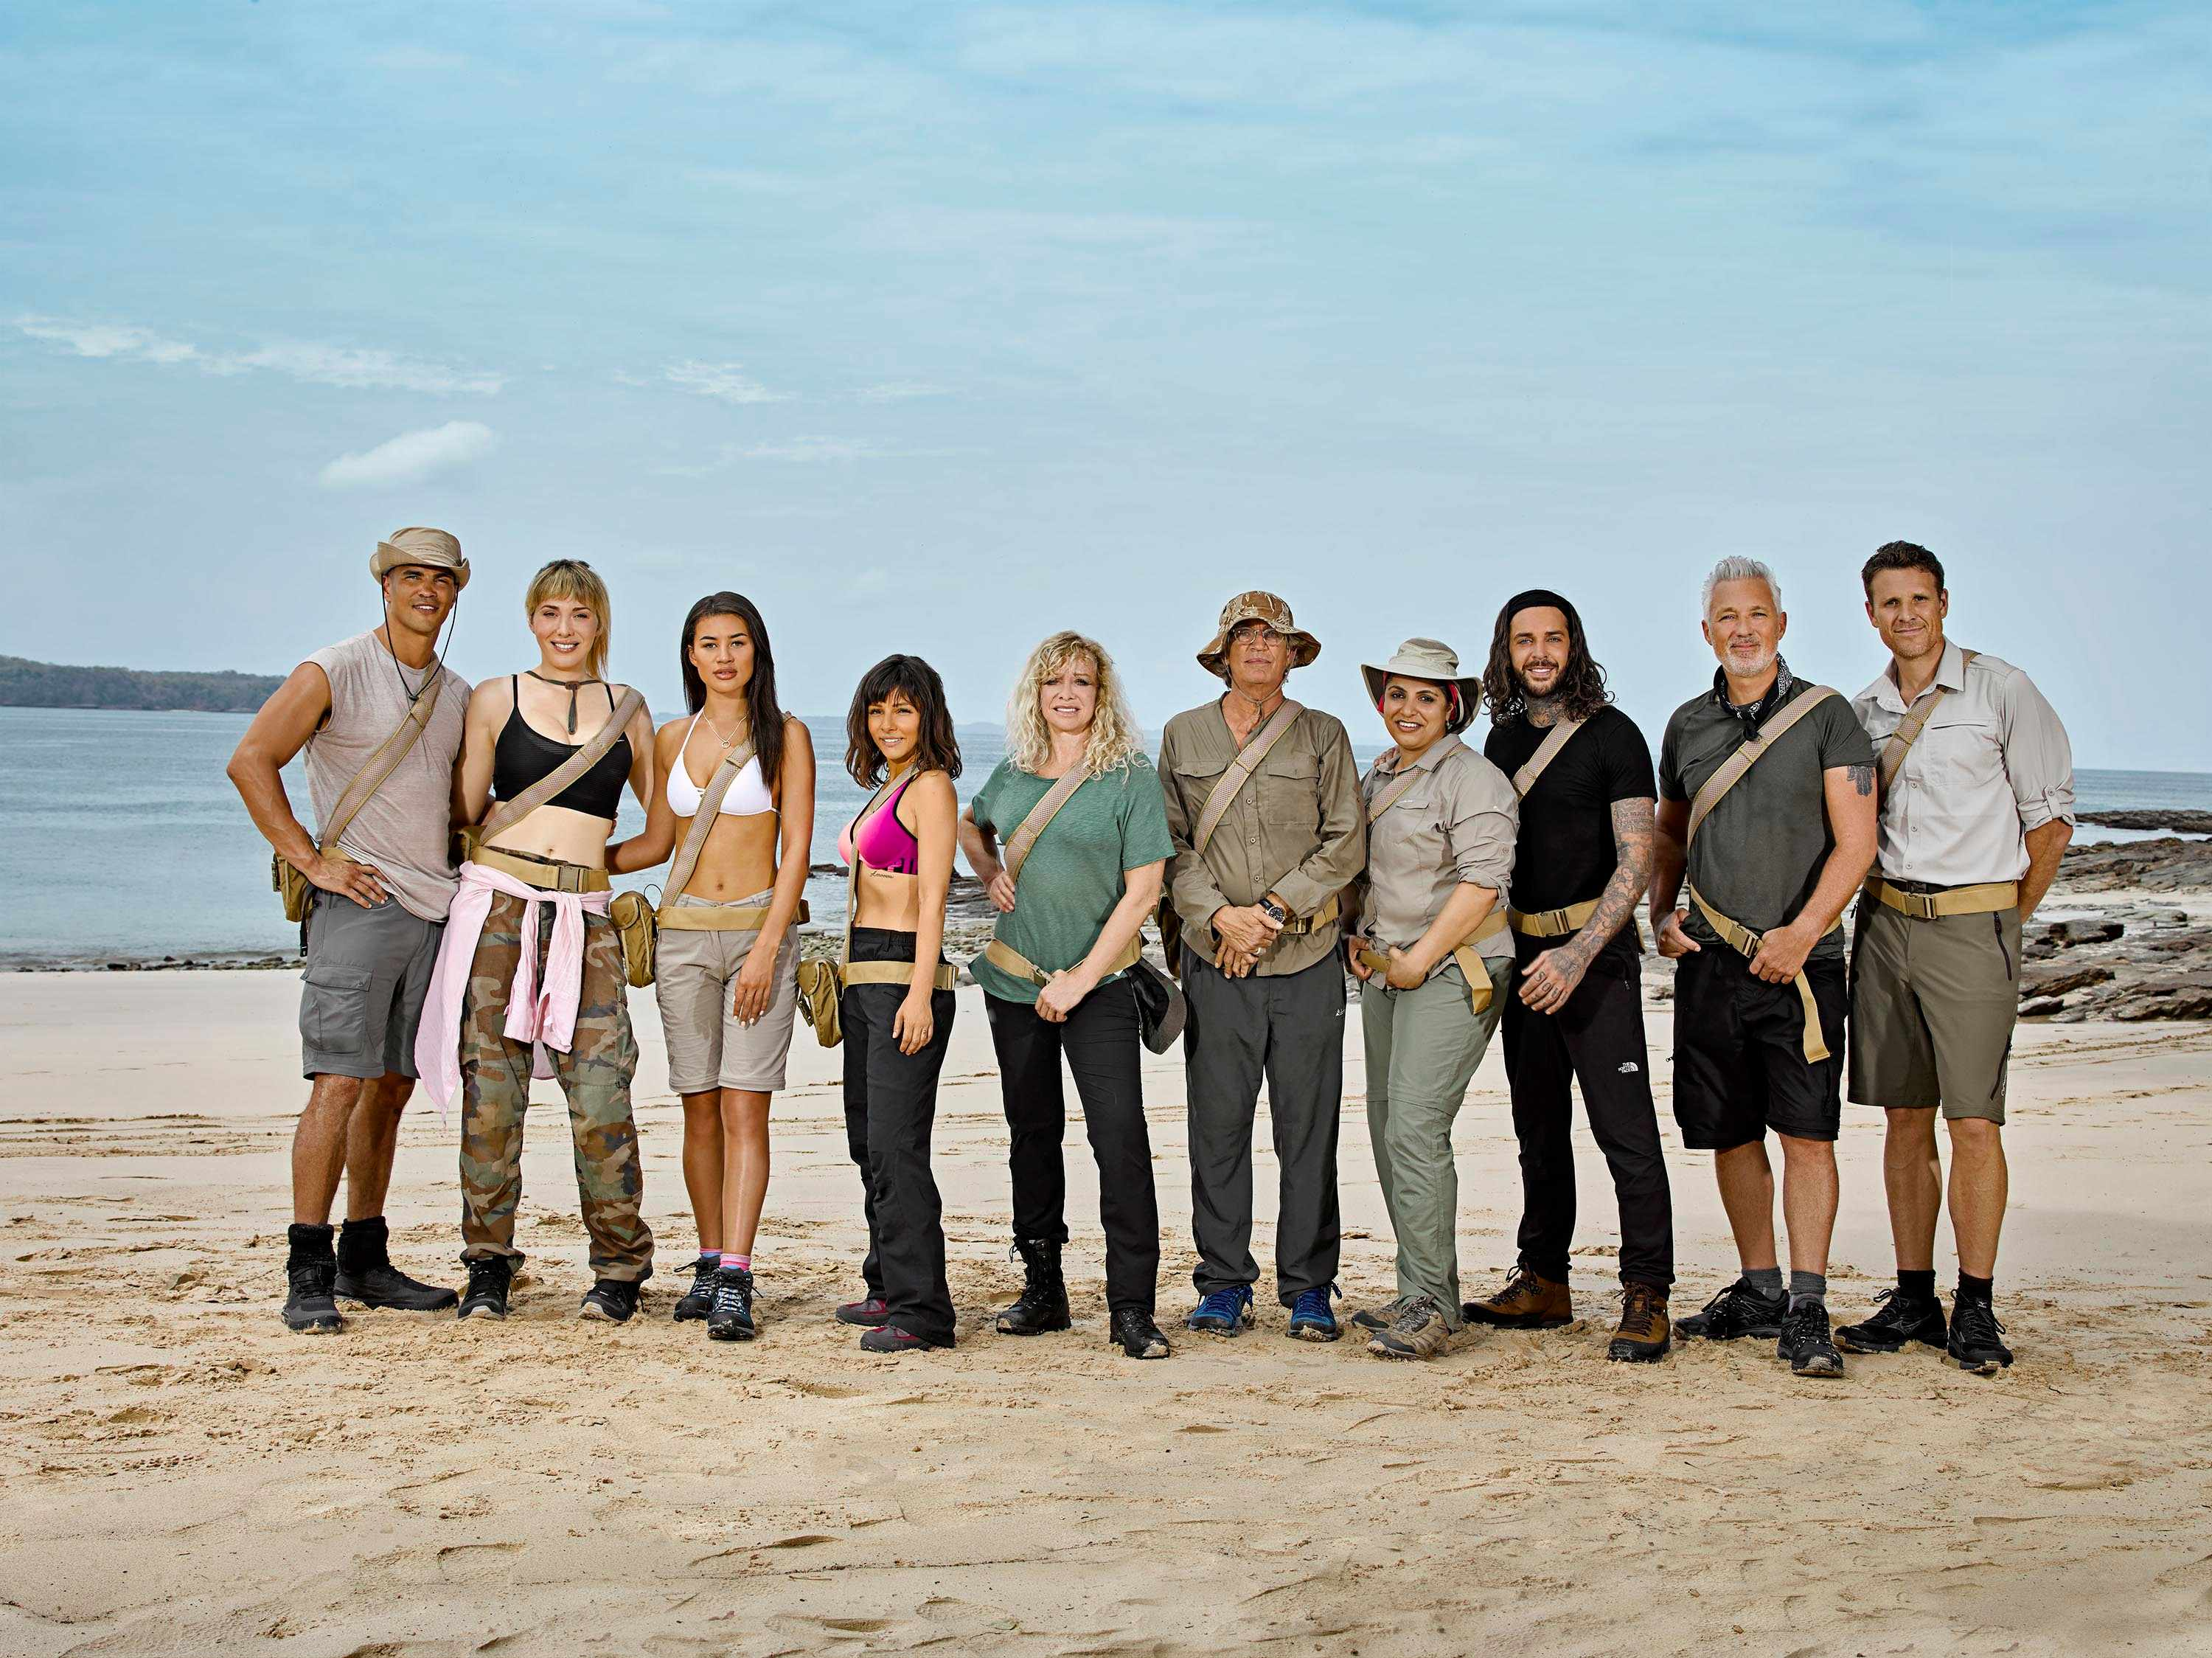 Anthony Ogogo, Paris Lees, Montana Brown, Roxanne Pallett, Jo Wood, Eric Roberts, Pete Wicks, Martin Kemp and James Cracknell